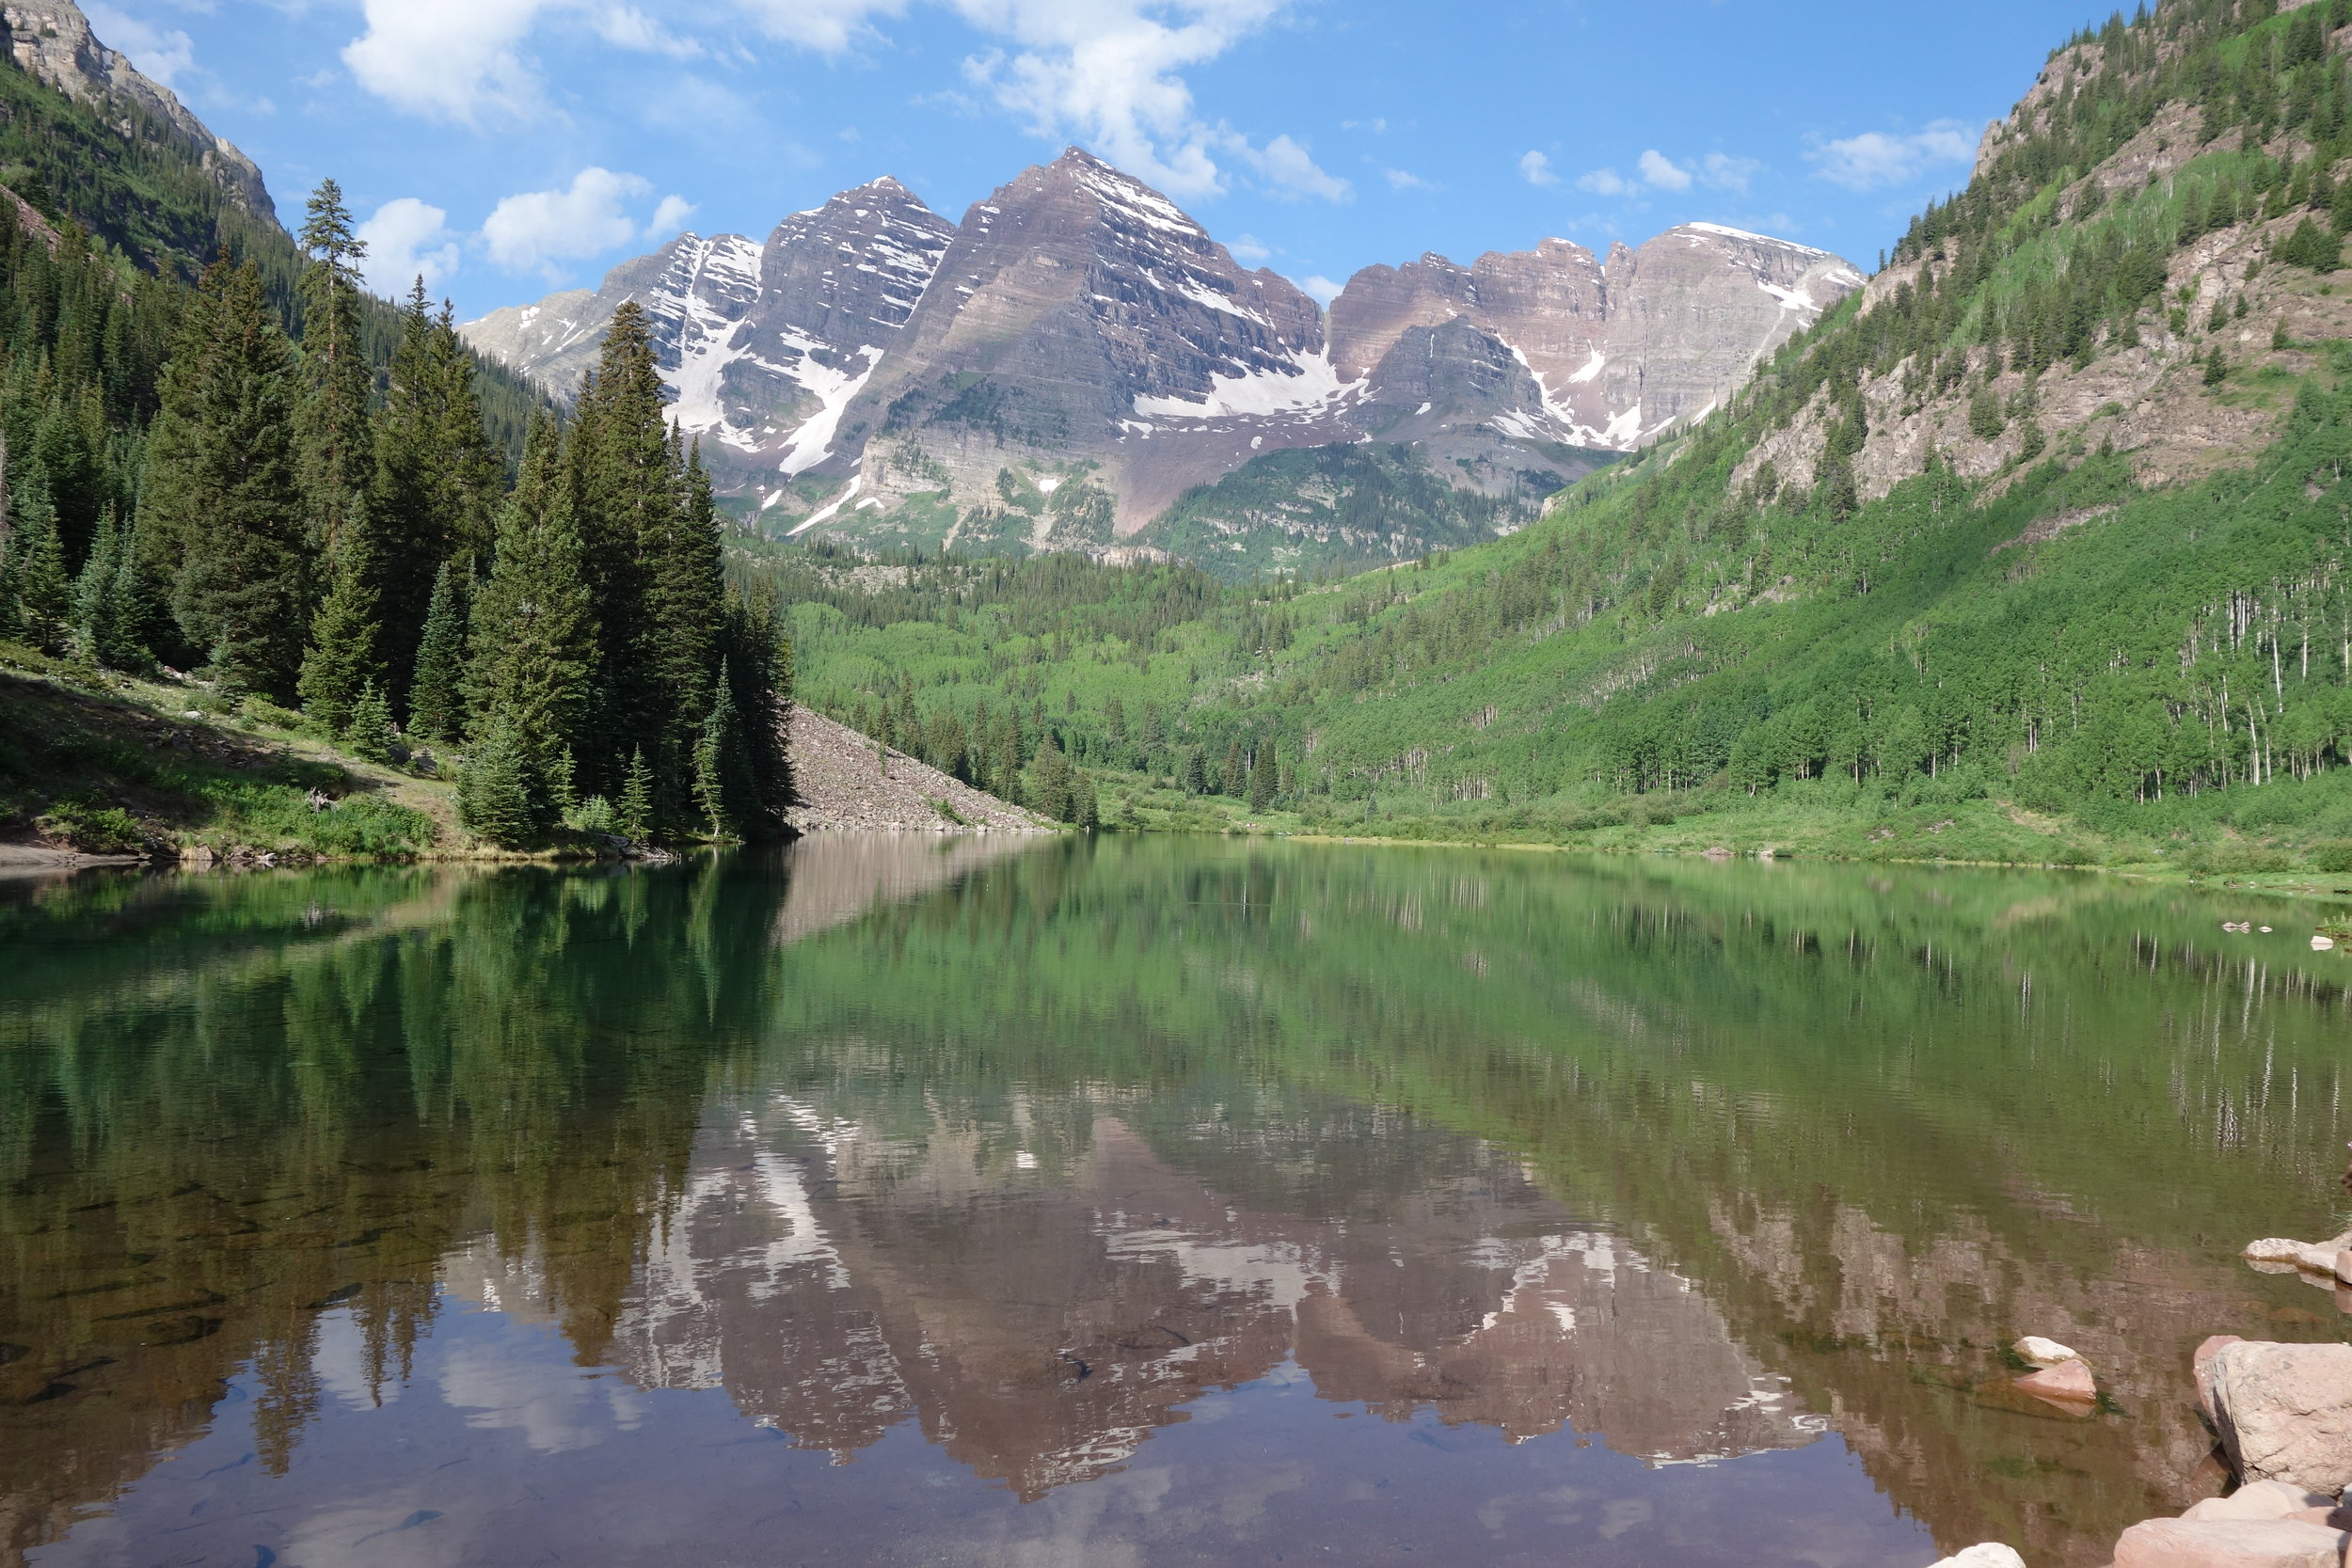 Maroon Lake reflects the images of 14,000-foot-plus Maroon Peak and North Maroon Peak; perhaps this is the most photographed scene in the Rocky Mountains.